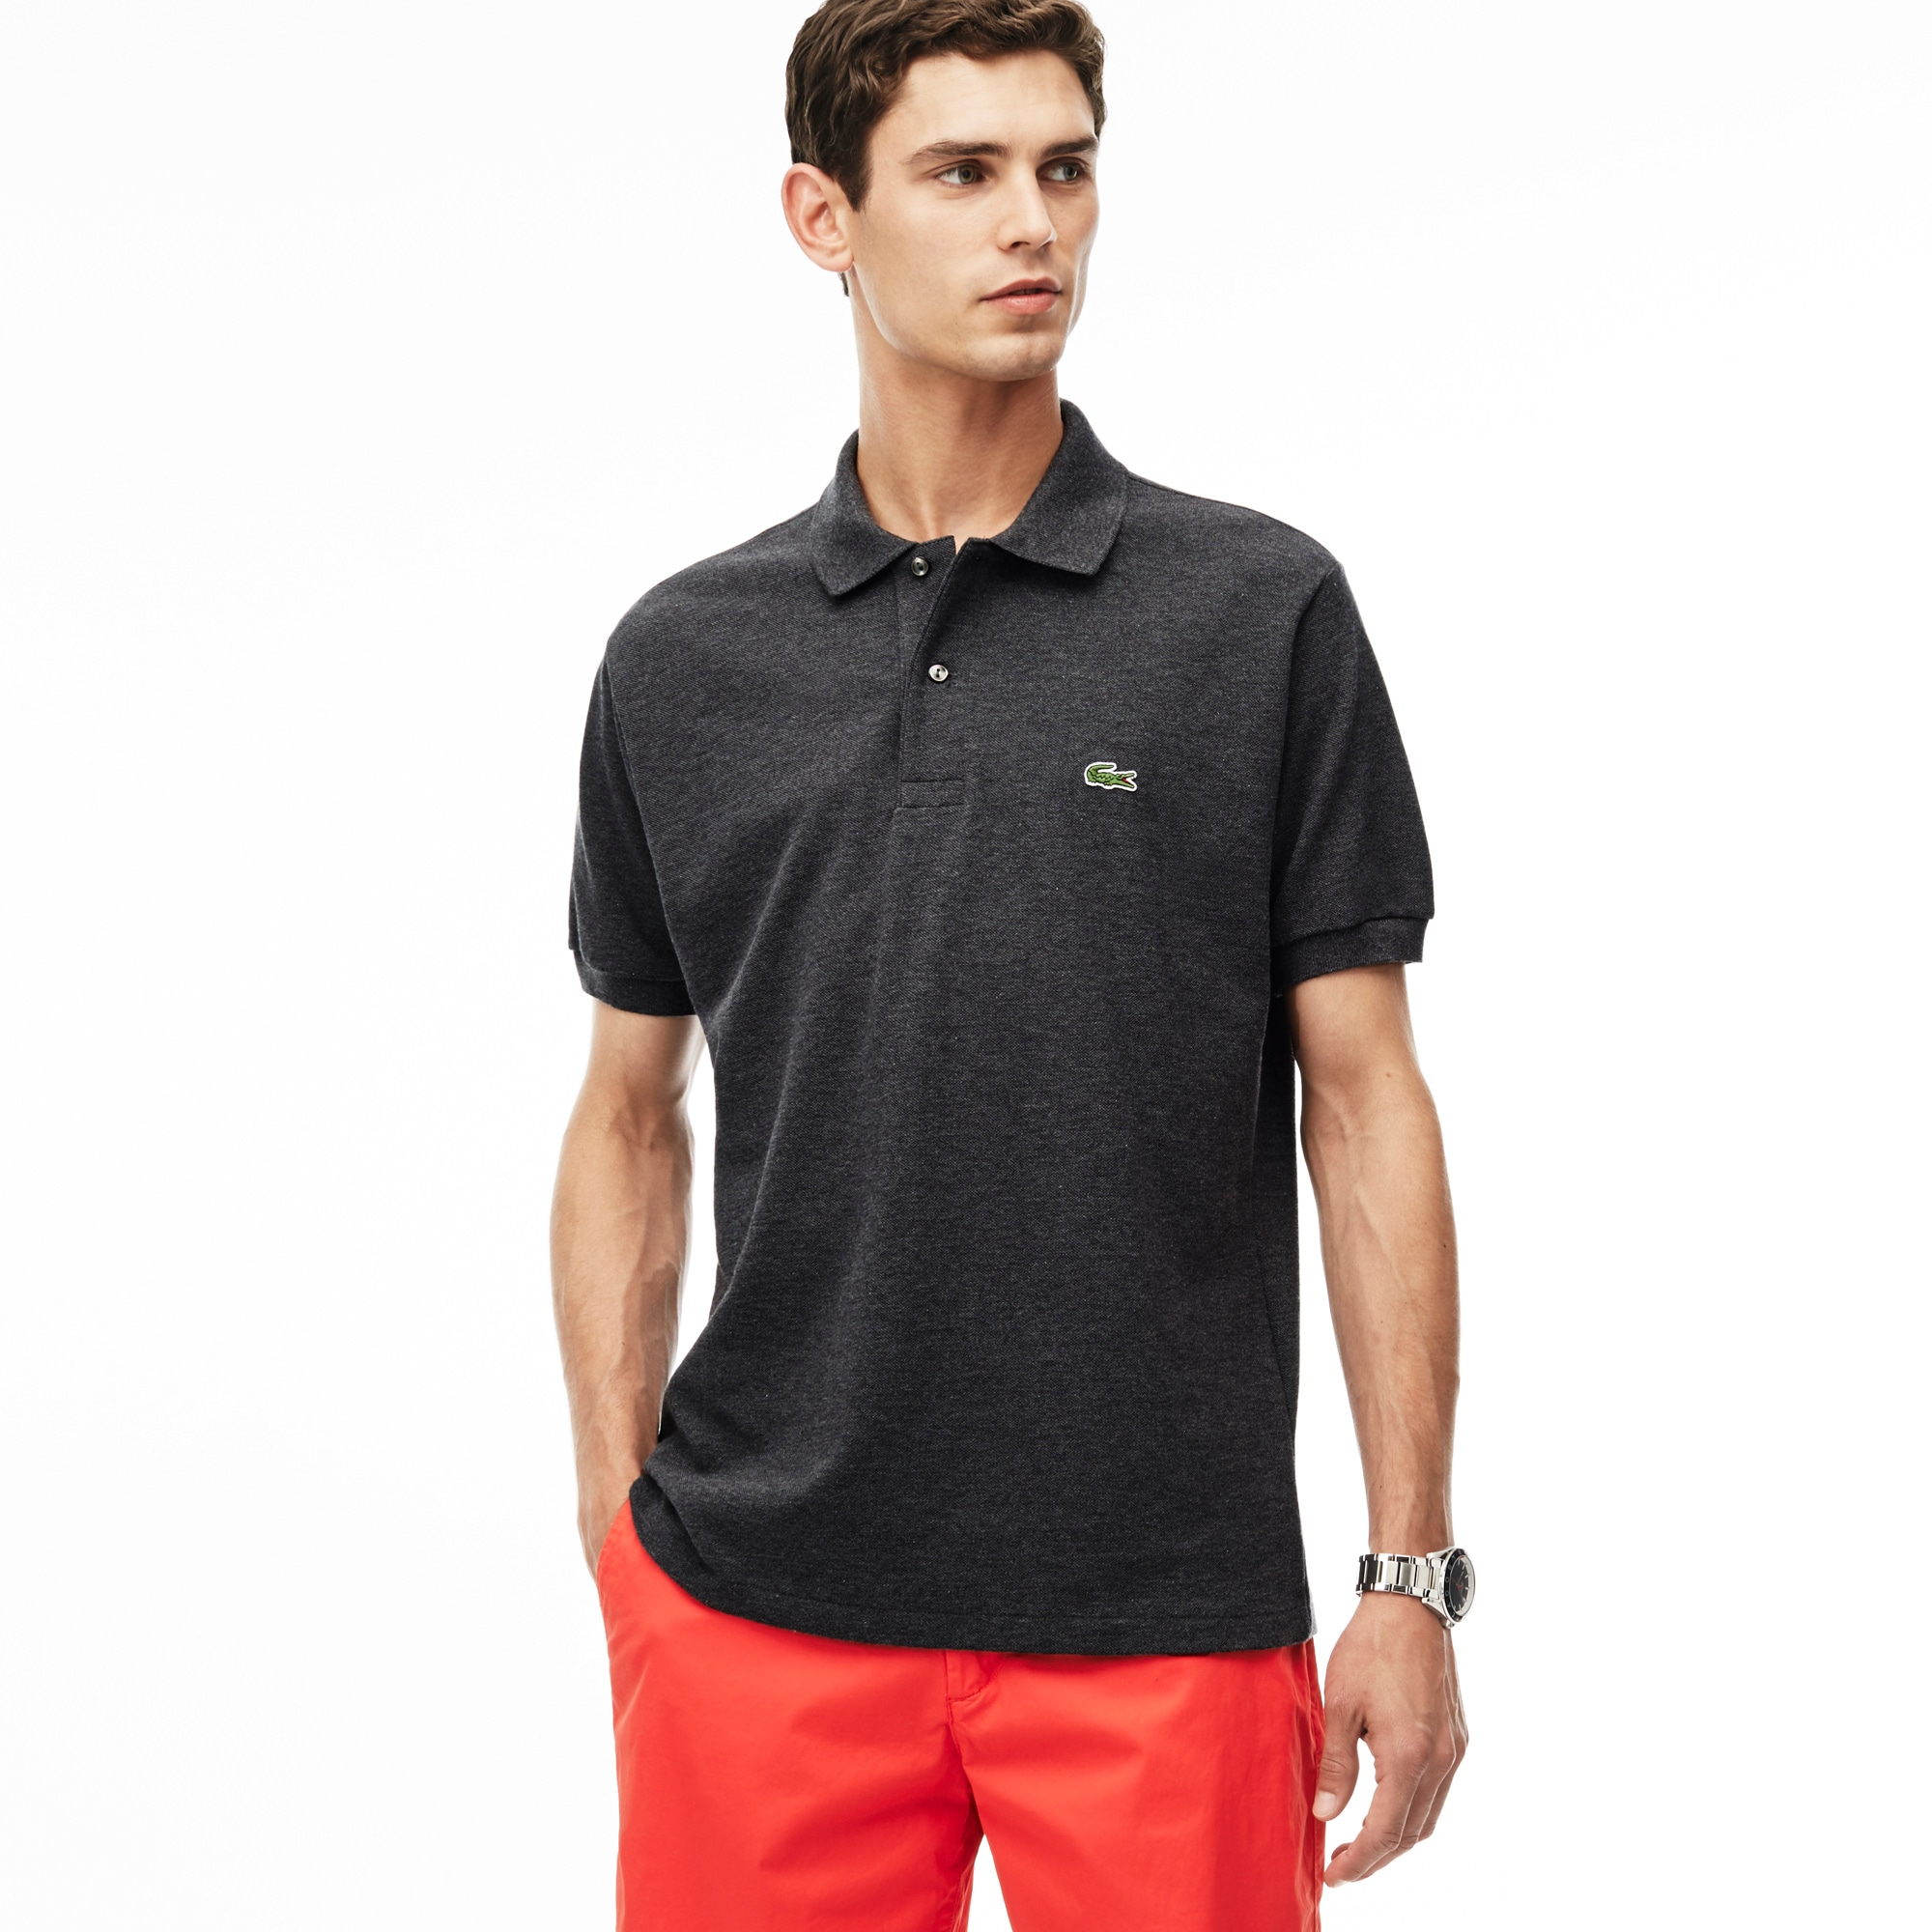 Men's Classic L.12.12 Chine Piqué Polo Shirt